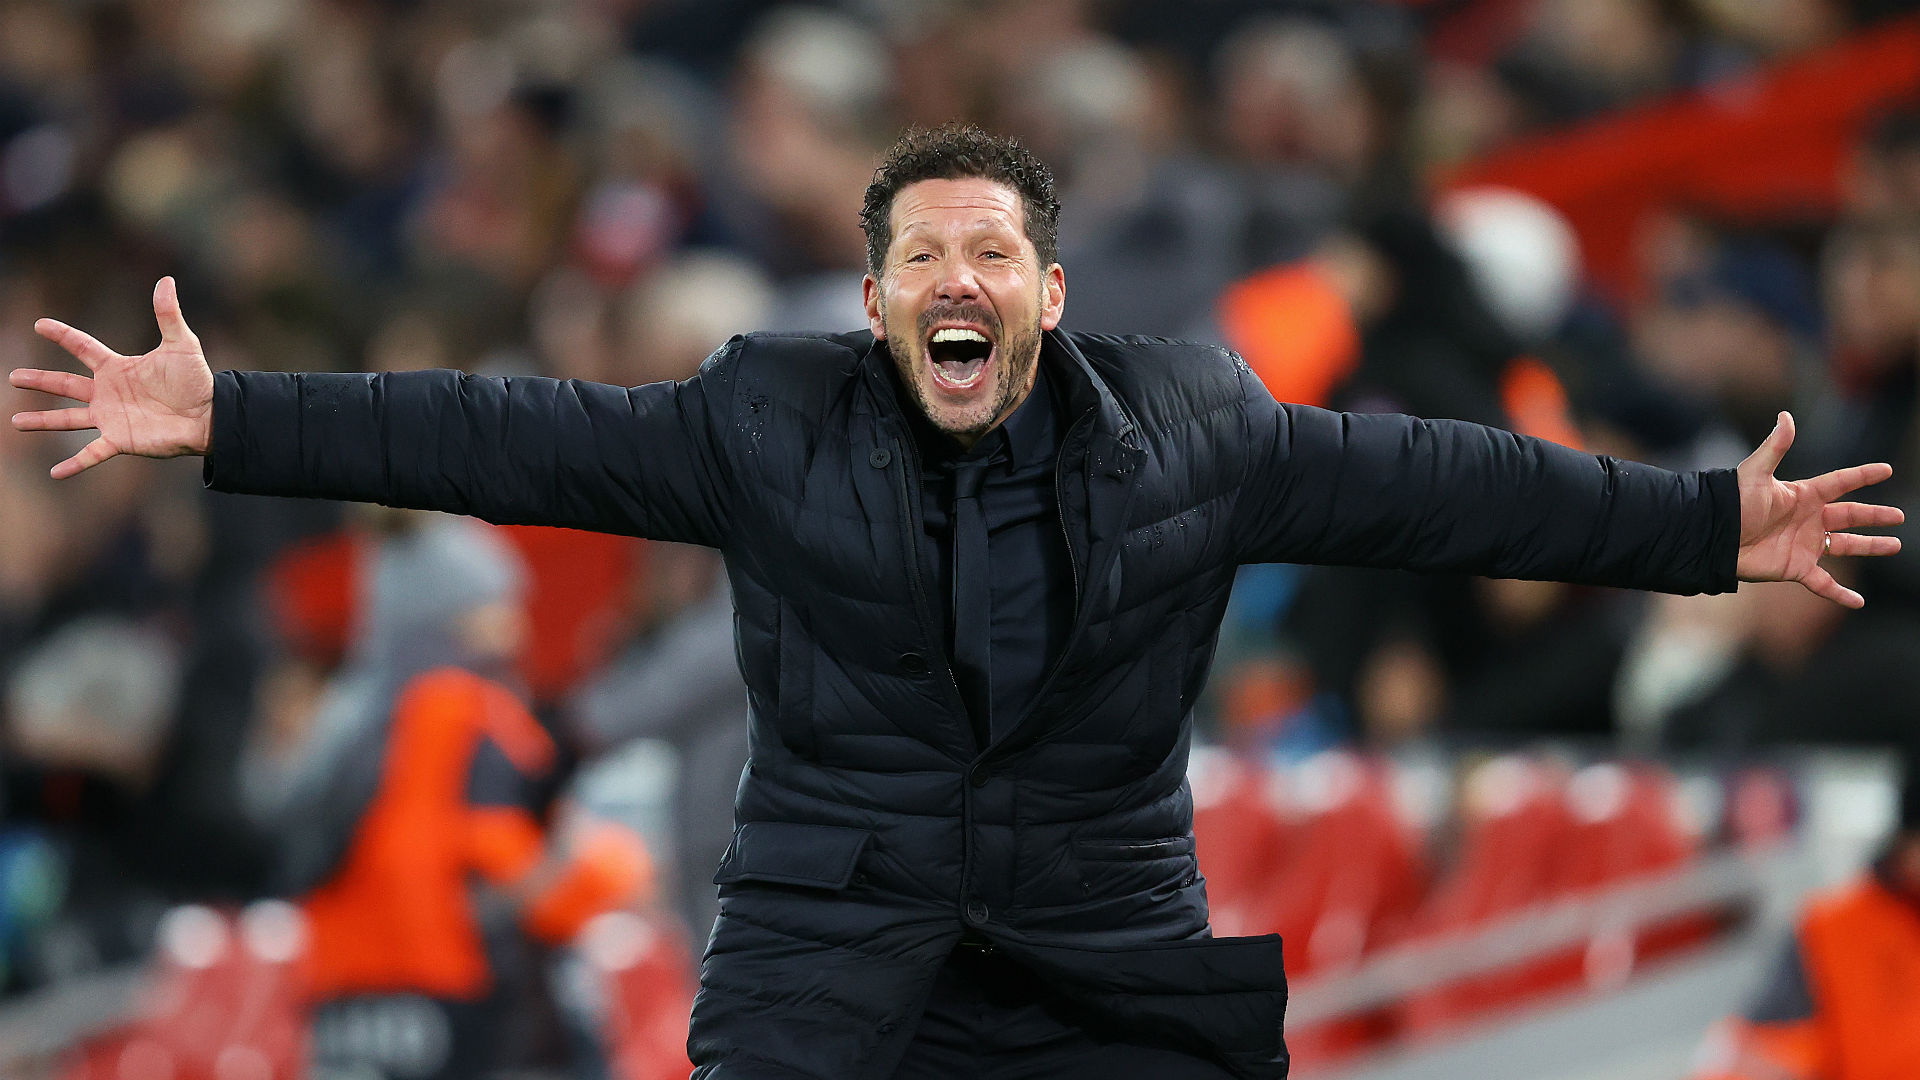 Klopp may not like it but Simeone is one of the game's modern heroes |  Goal.com